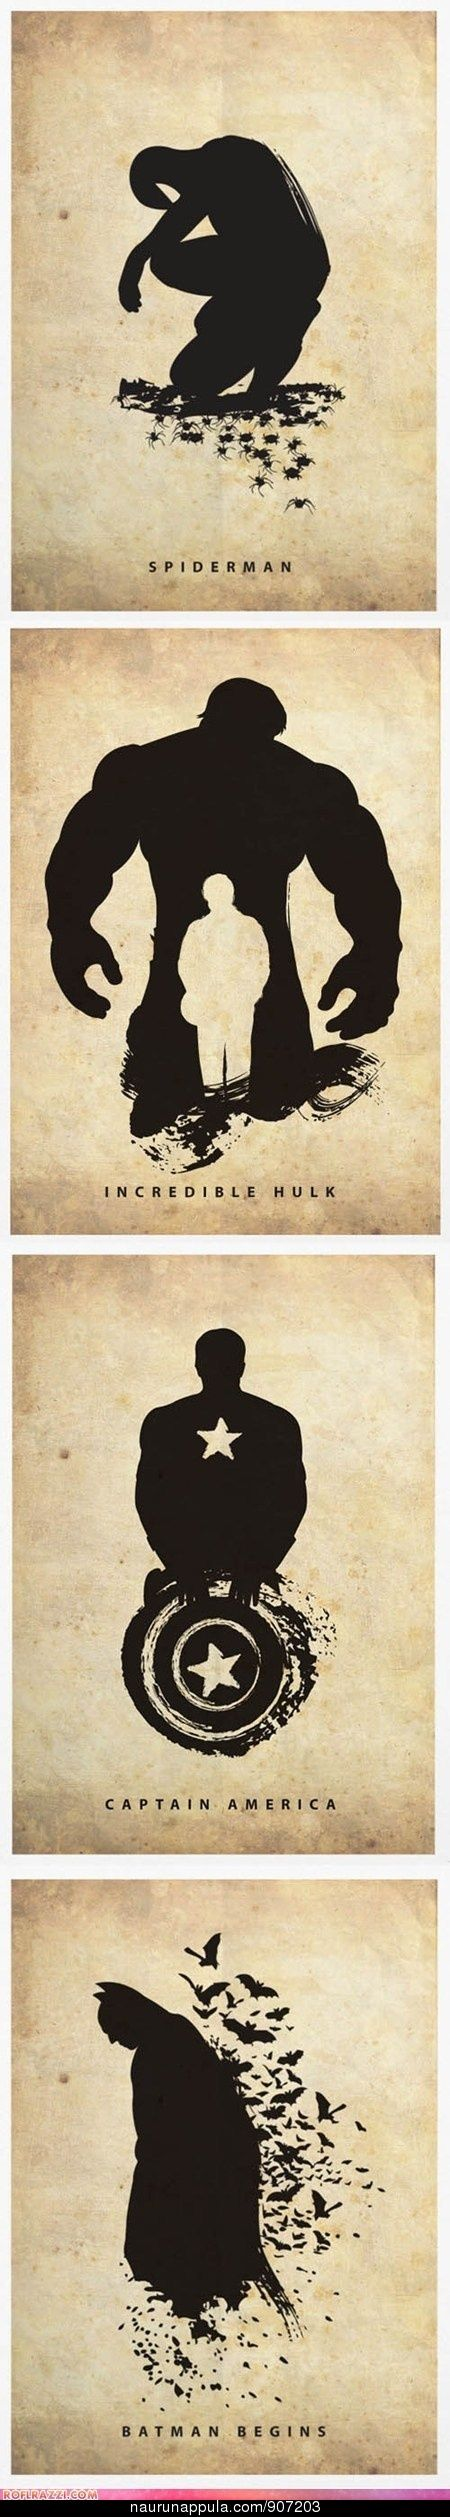 Superhero Silhouettes - Spiderman, The Hulk, Captain America, Batman.  Neutral wall decor for the boys.